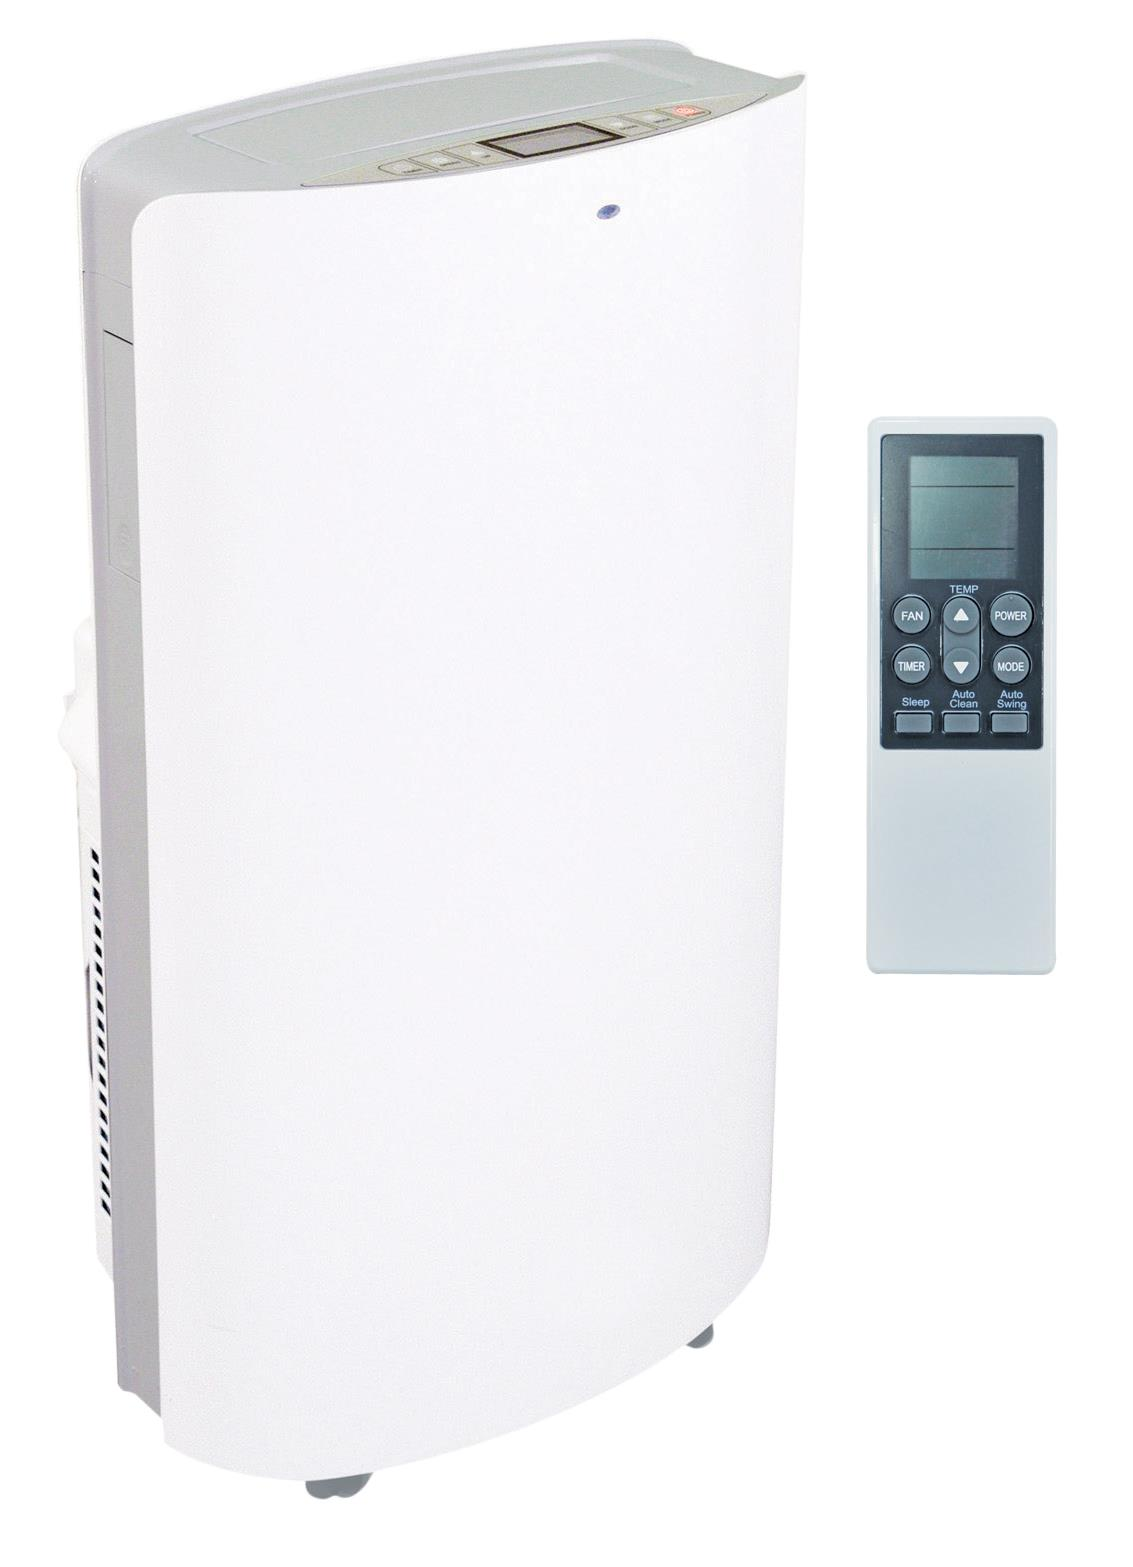 Prem I Air EH1640 15000Btu 4.7kw Portable Air Conditioning Unit Aircon247.com | discount ...